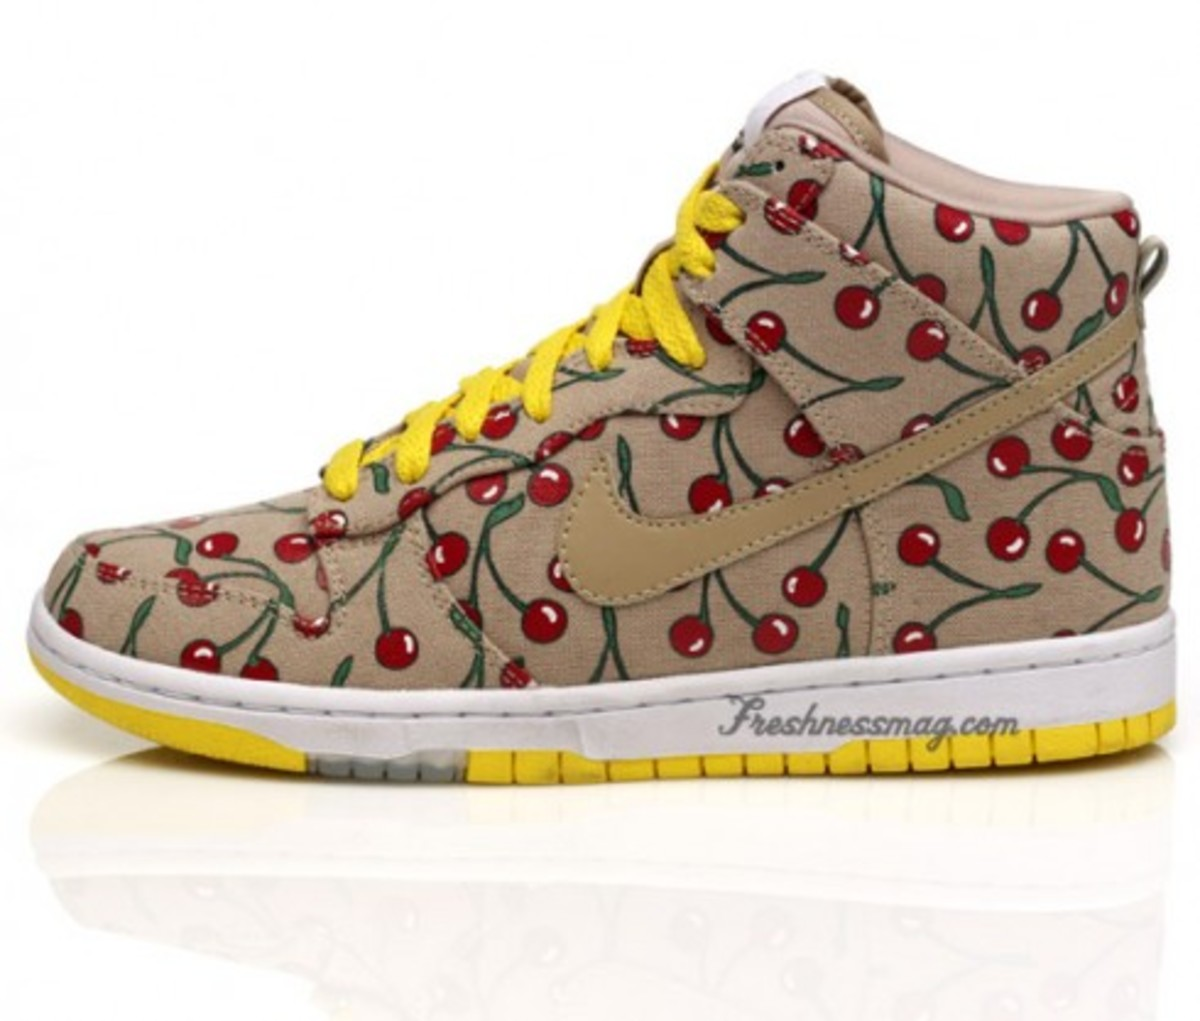 Nike x Paule Marrot - WMNS Skinny Dunks - Cherries - 2